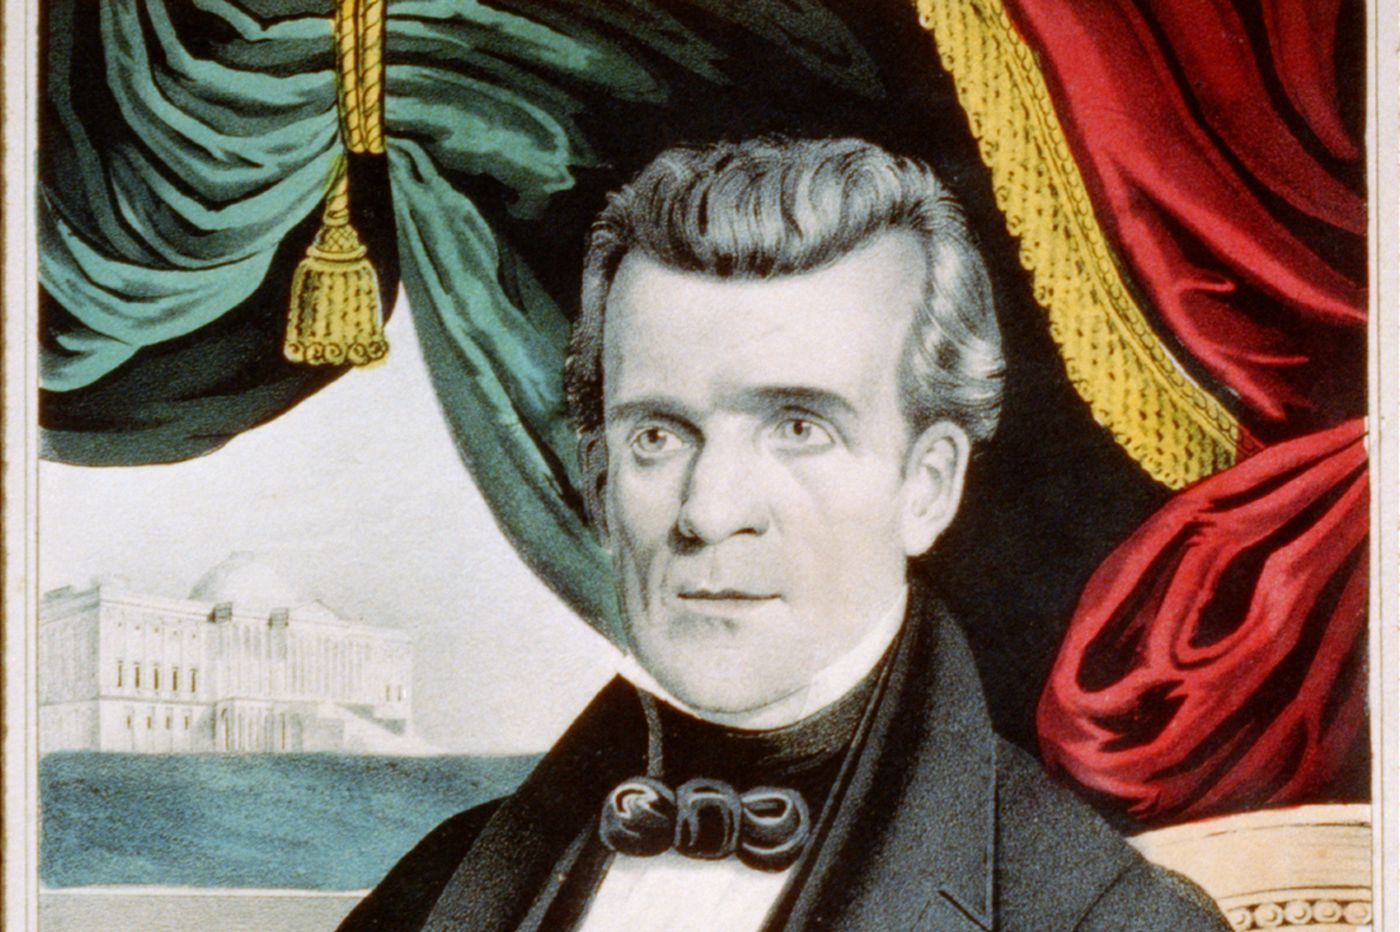 Medical mystery: A president, an epidemic, and grand tour cut short